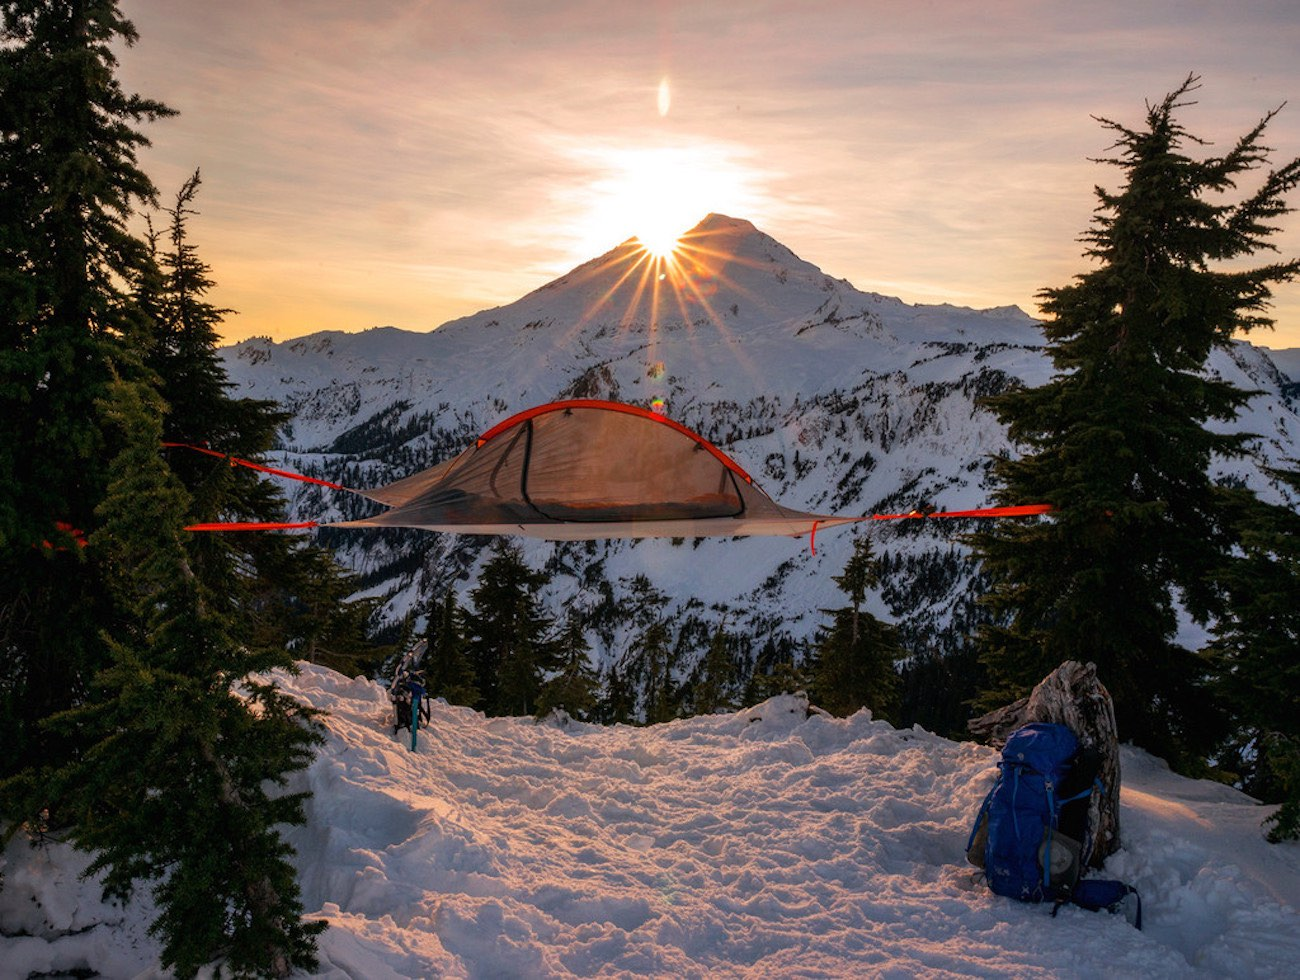 Flite Tree Tent from Tentsile ... & Flite Tree Tent from Tentsile » Gadget Flow